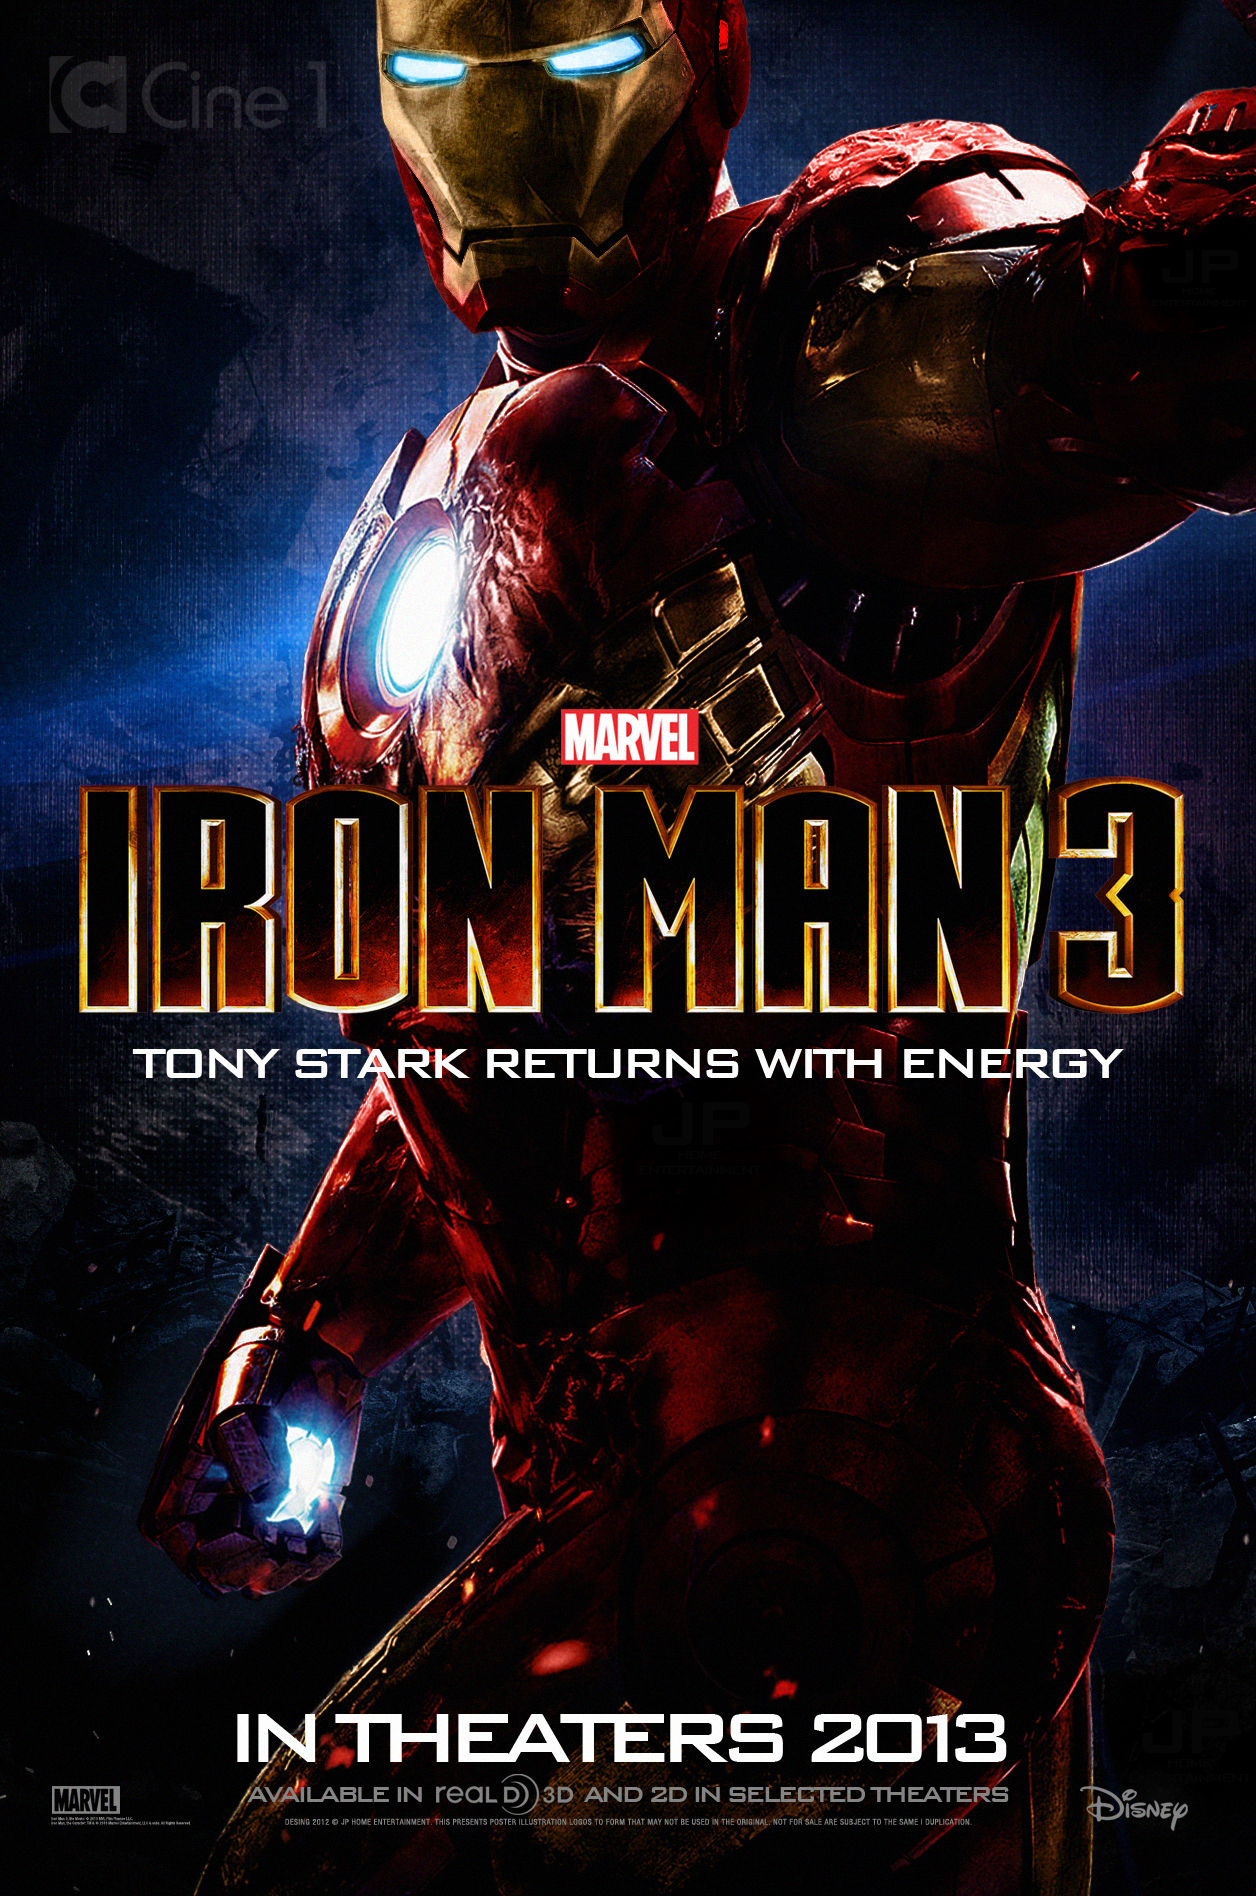 Iron Man 3 DVD Release Date | Redbox, Netflix, iTunes, Amazon